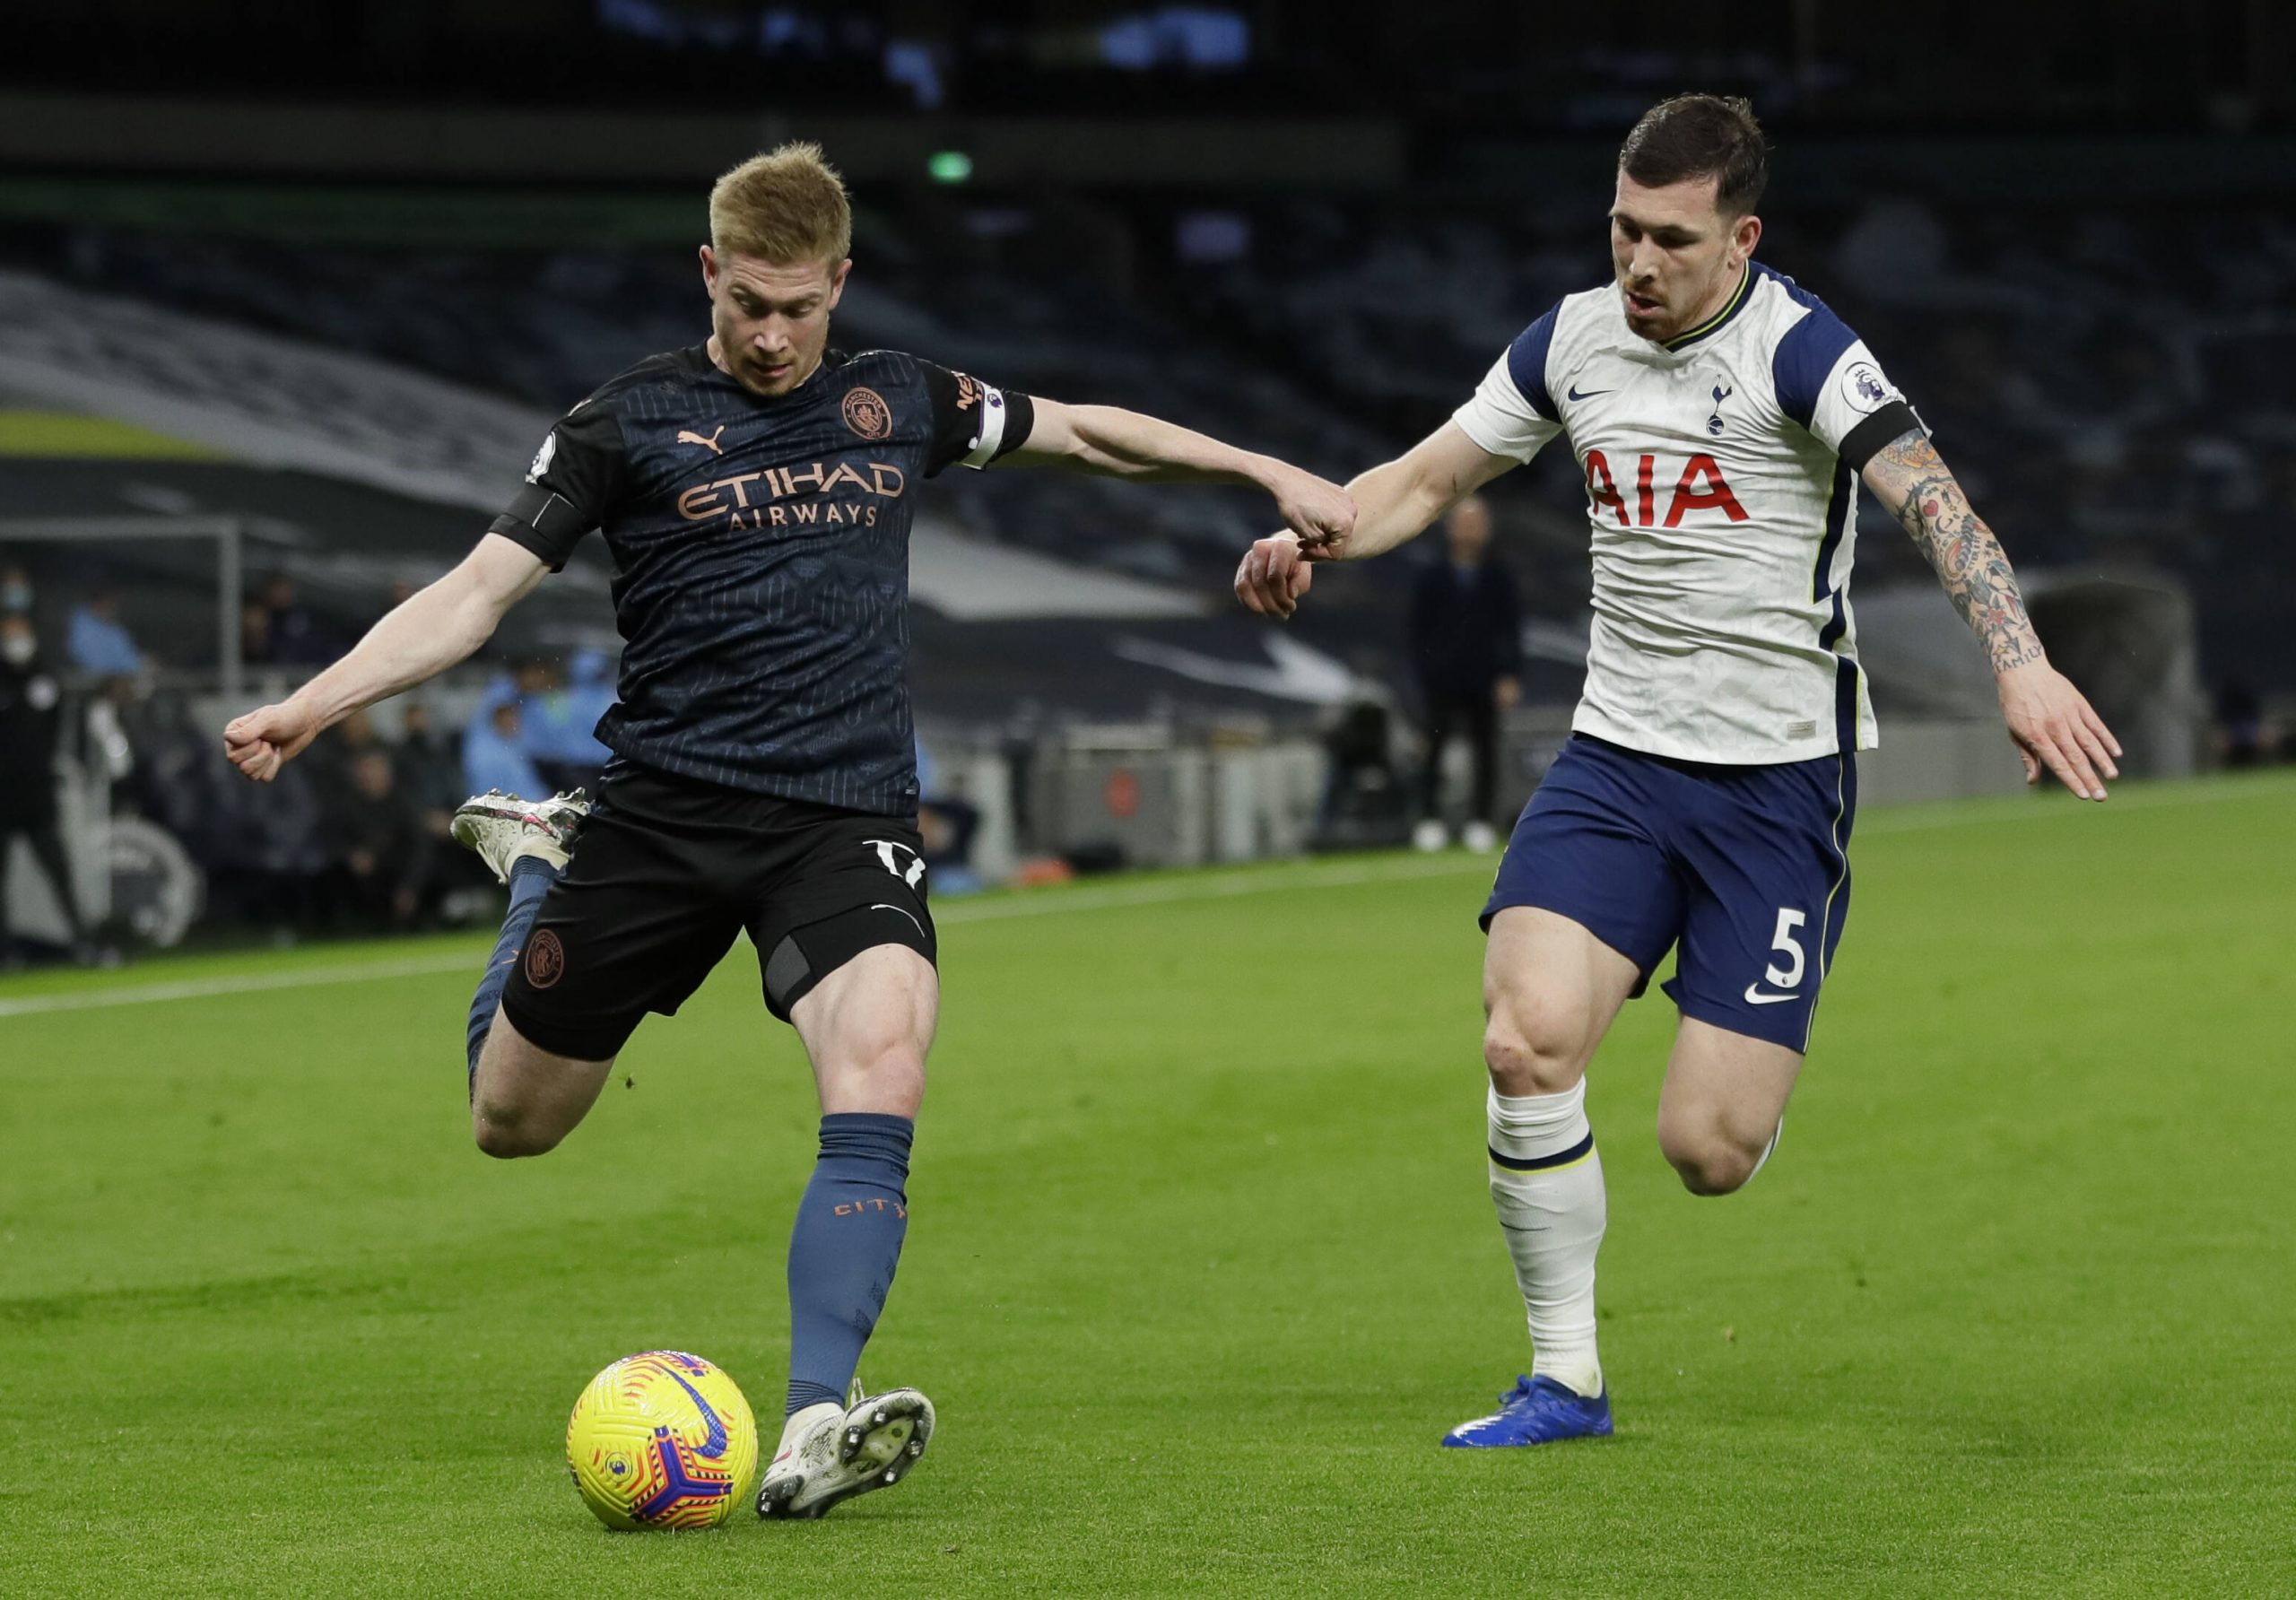 Pep Guardiola gave an injury update on Manchester City midfielder, Kevin de Bruyne, ahead of the Carabao Cup final against Tottenham Hotspur.